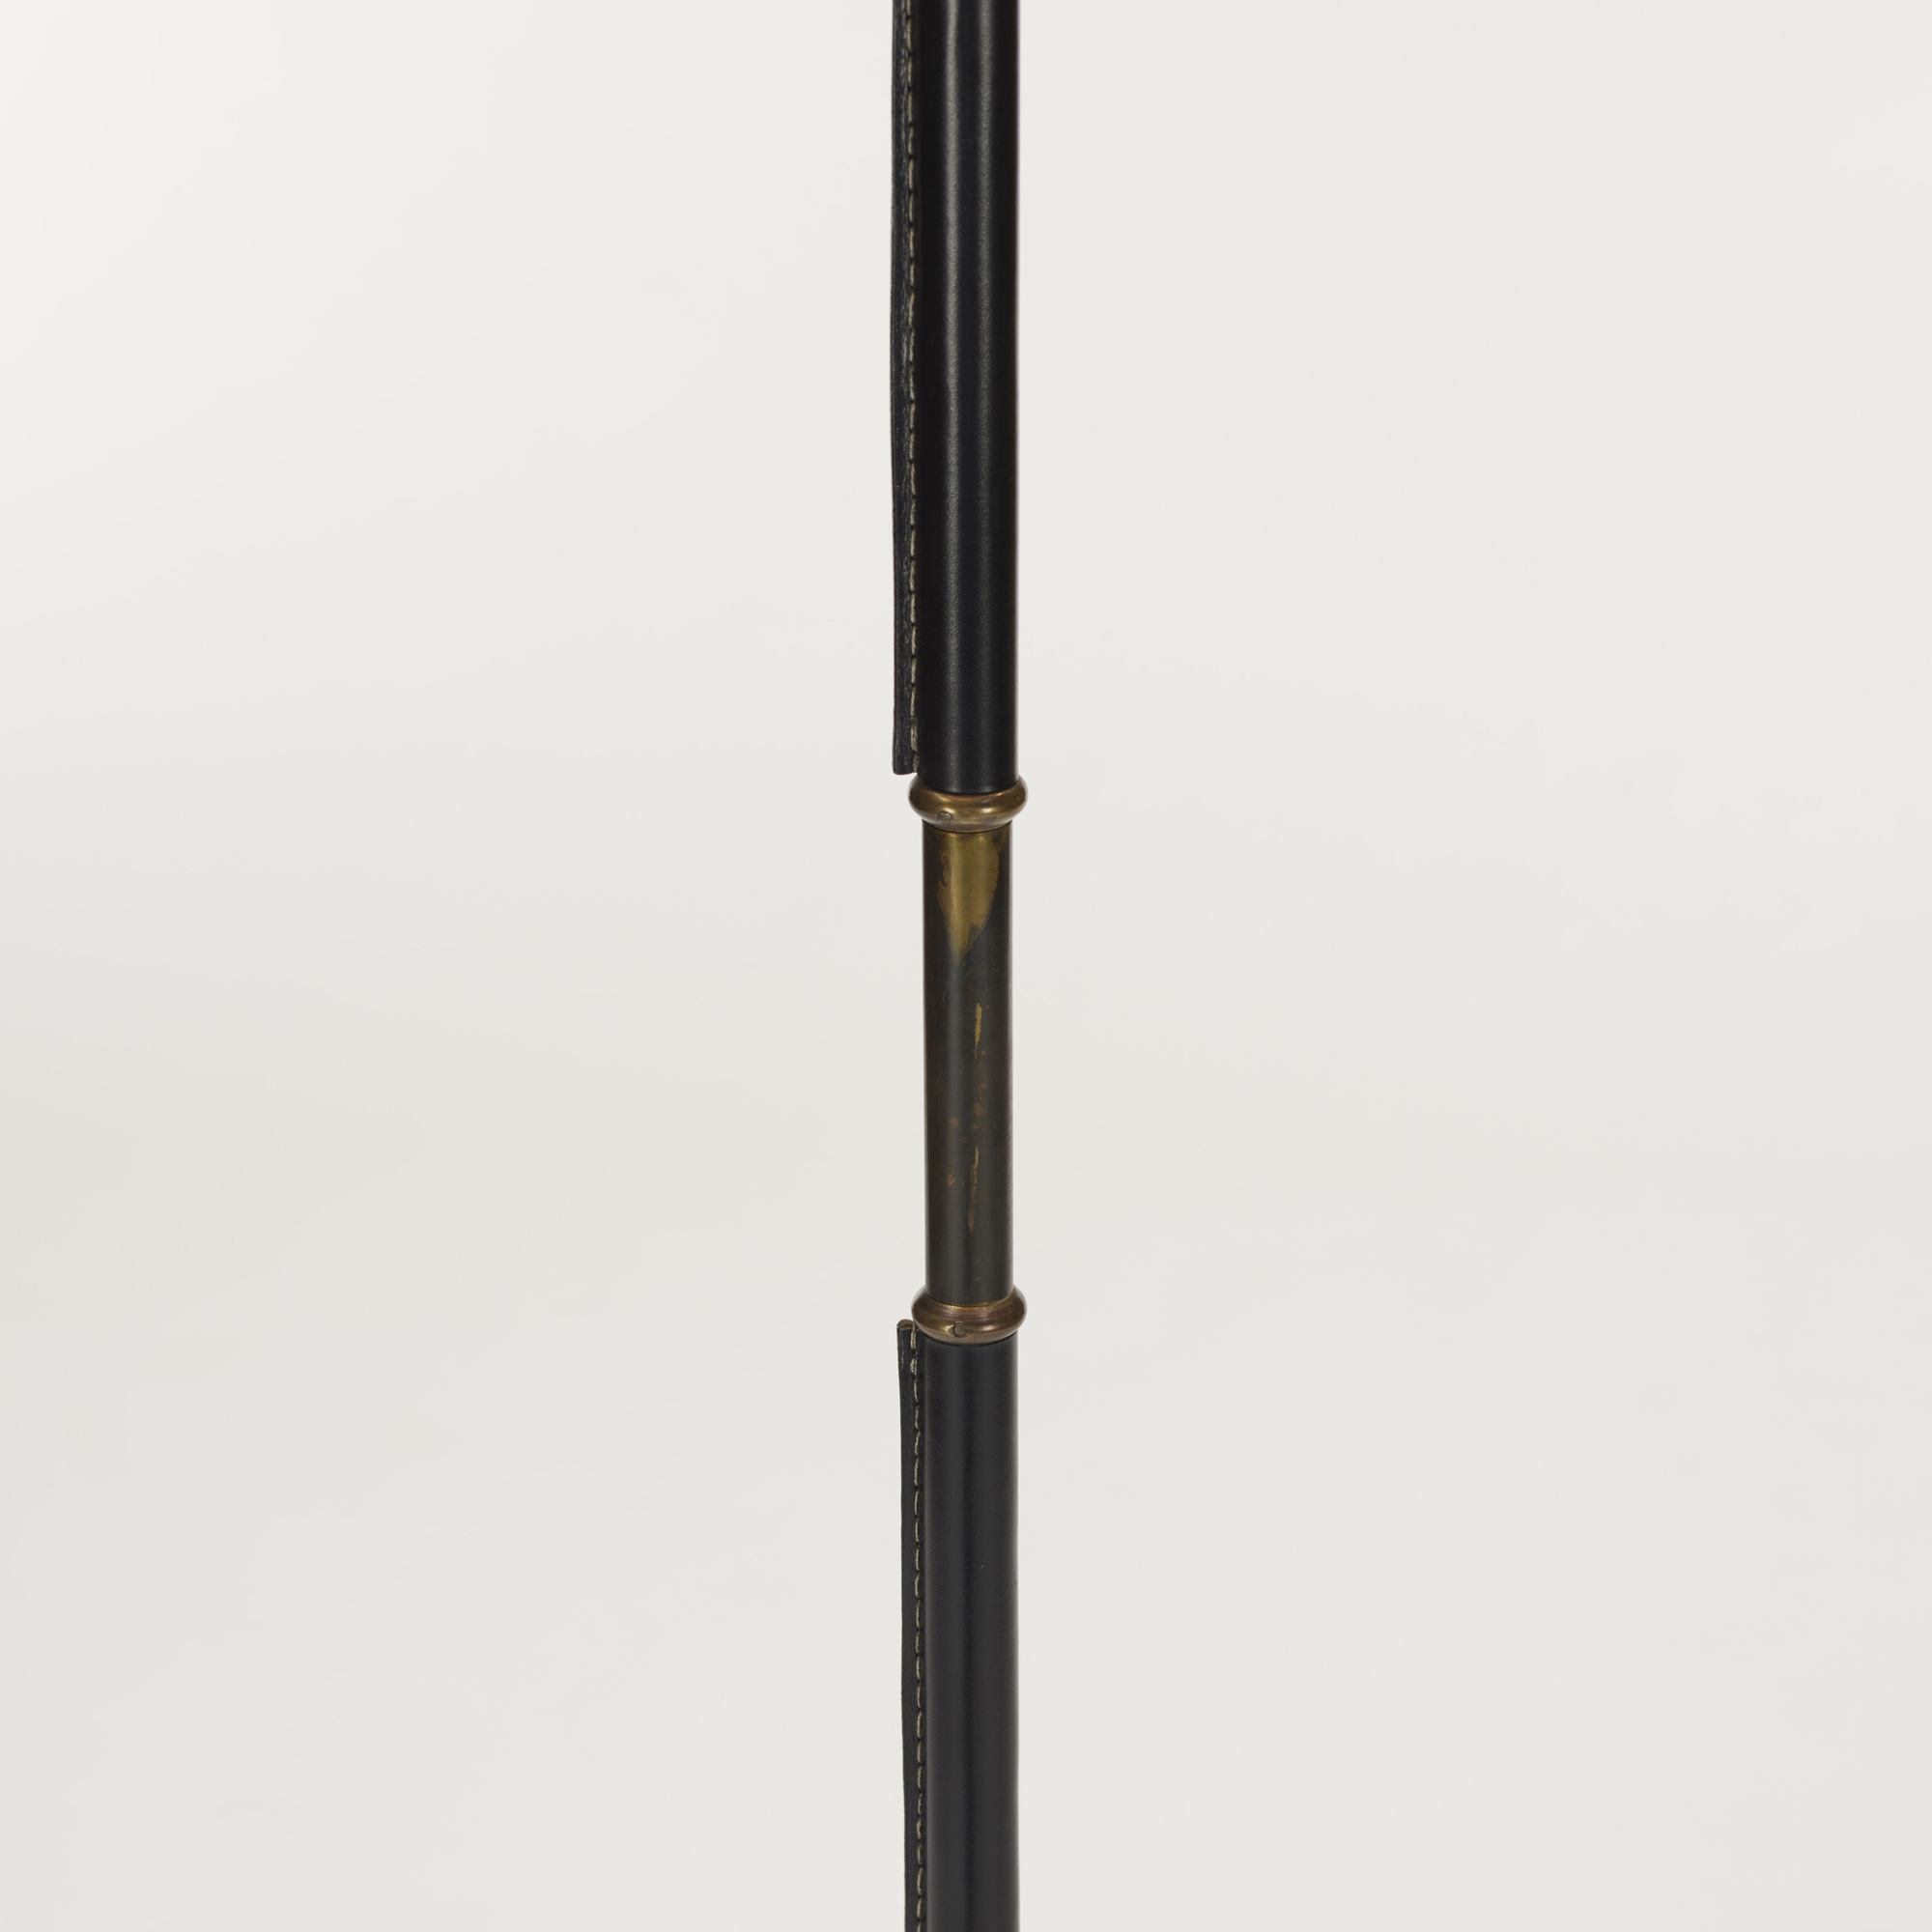 406: Jacques Adnet / floor lamp (3 of 4)